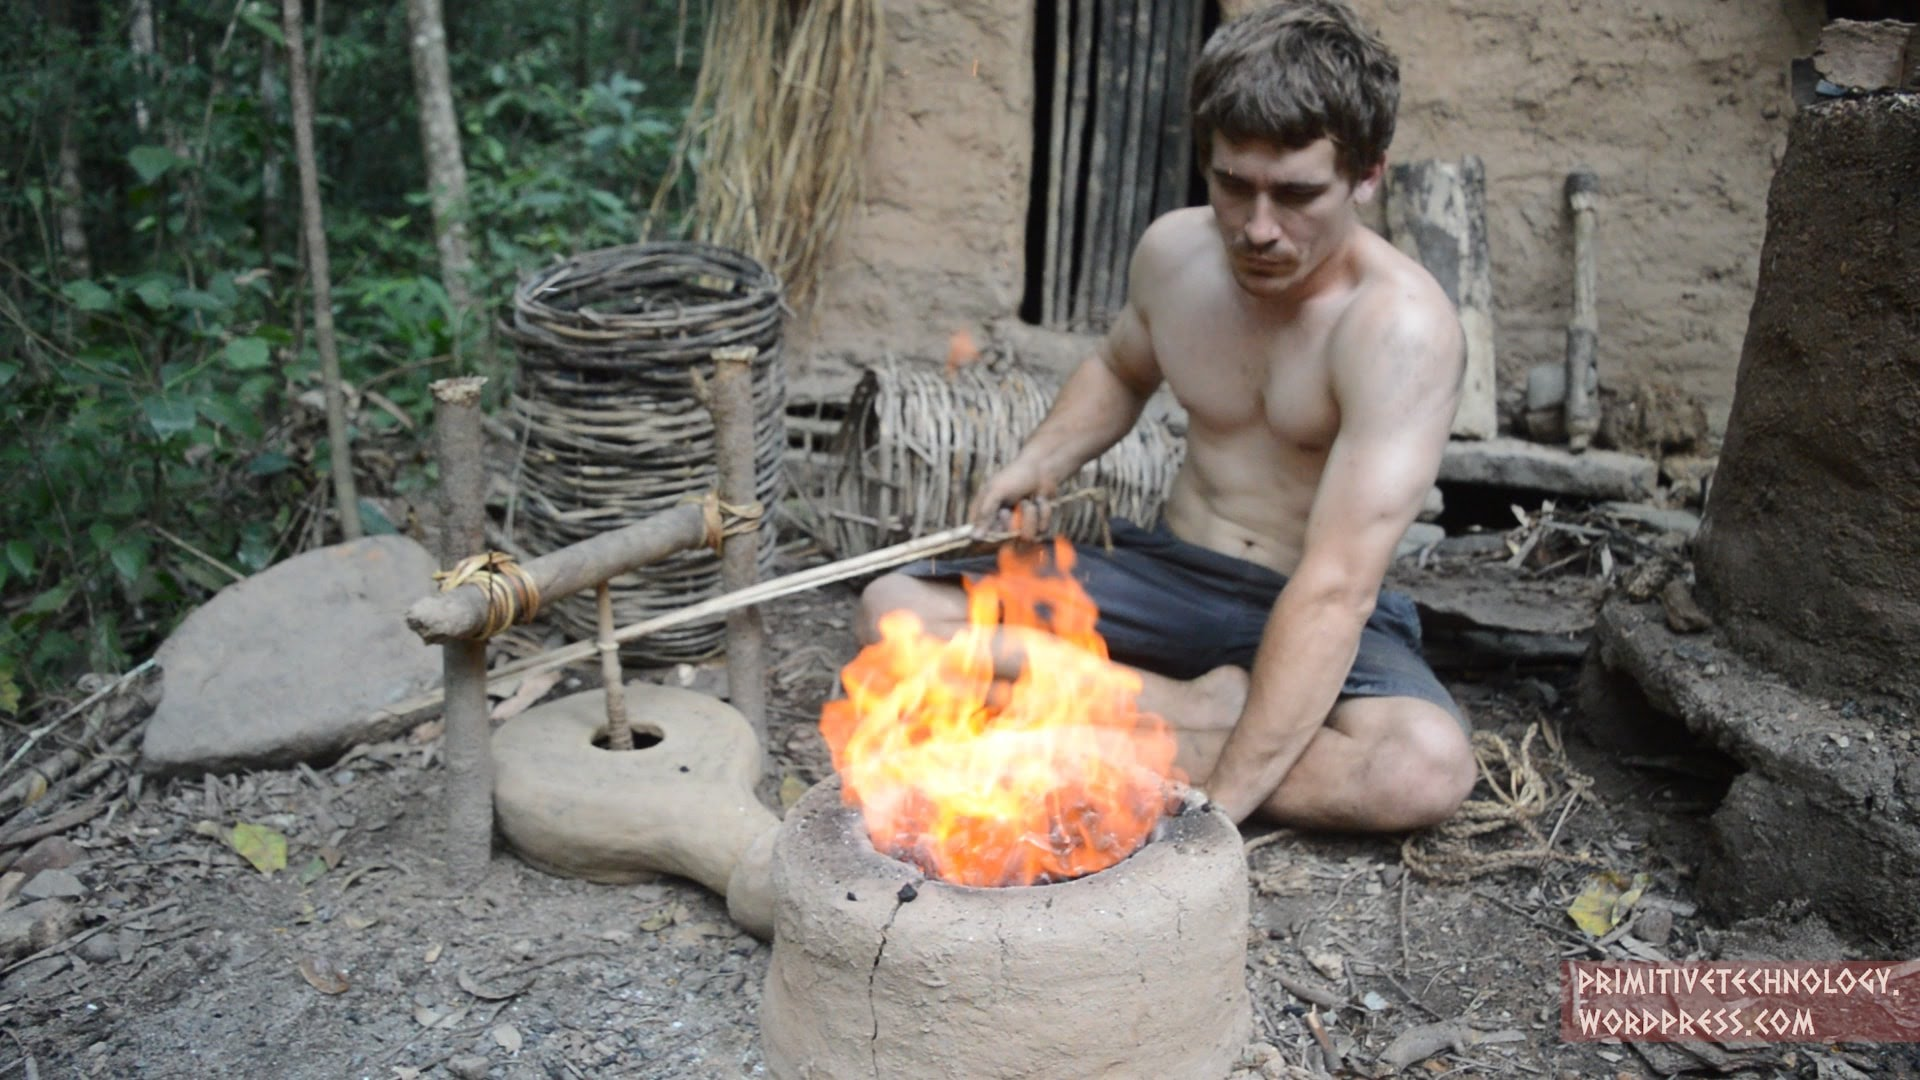 Interesting Primitive Technology - Forge Blower